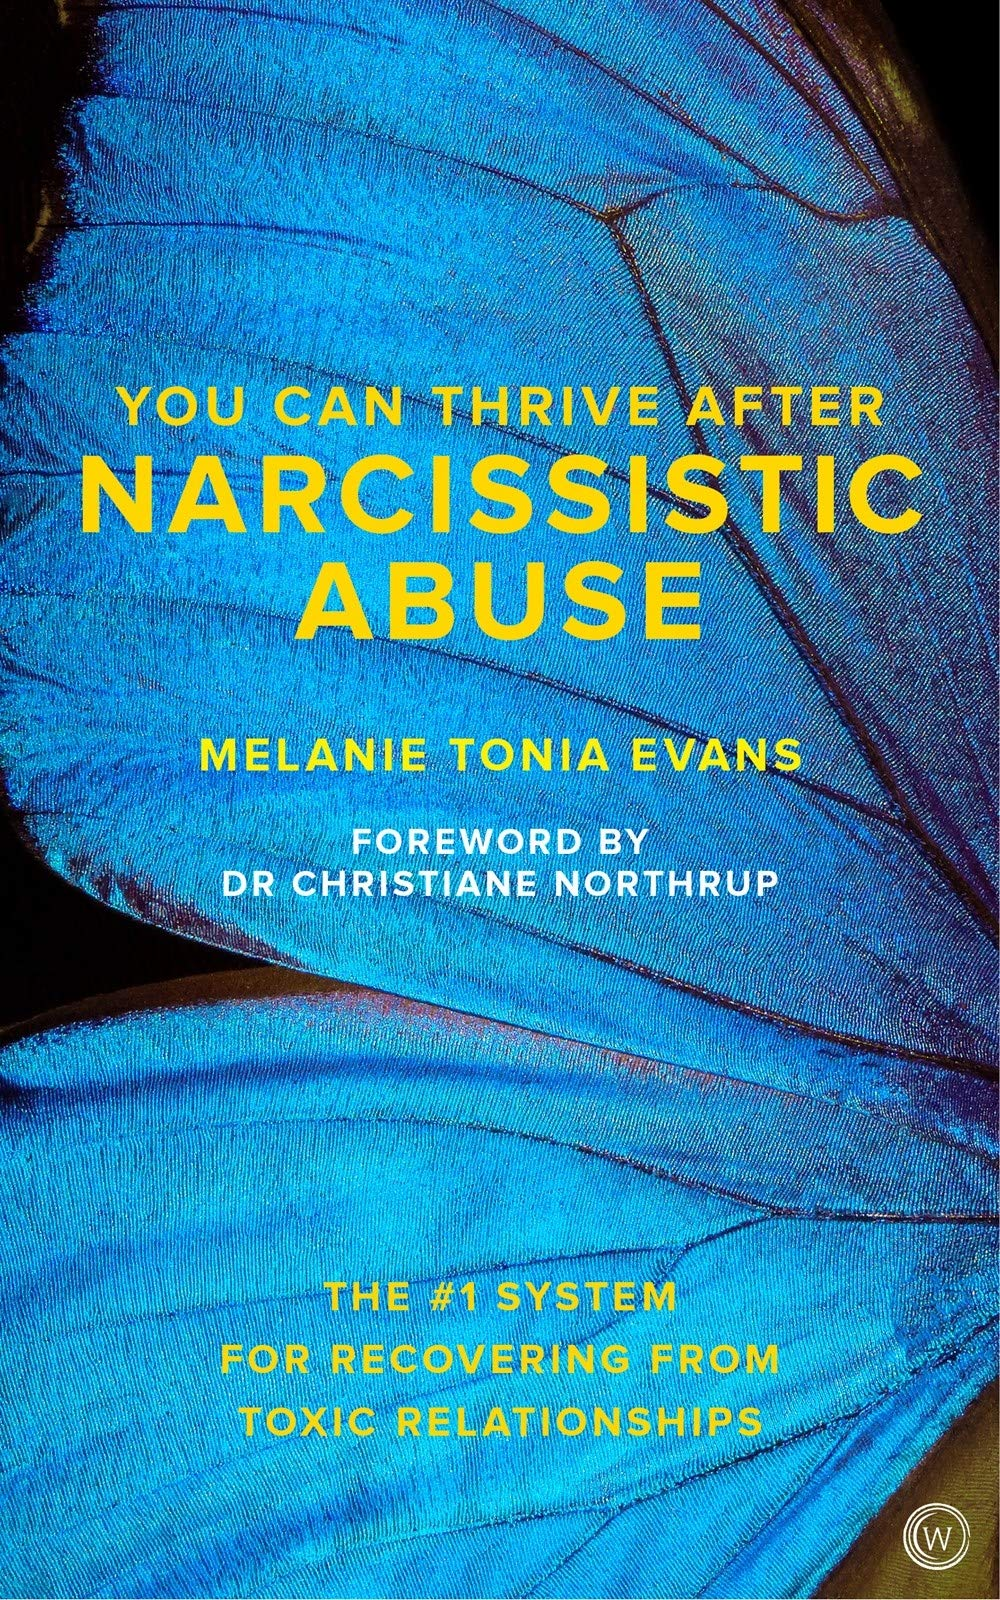 Thrive After Narcissistic Abuse Relationships product image